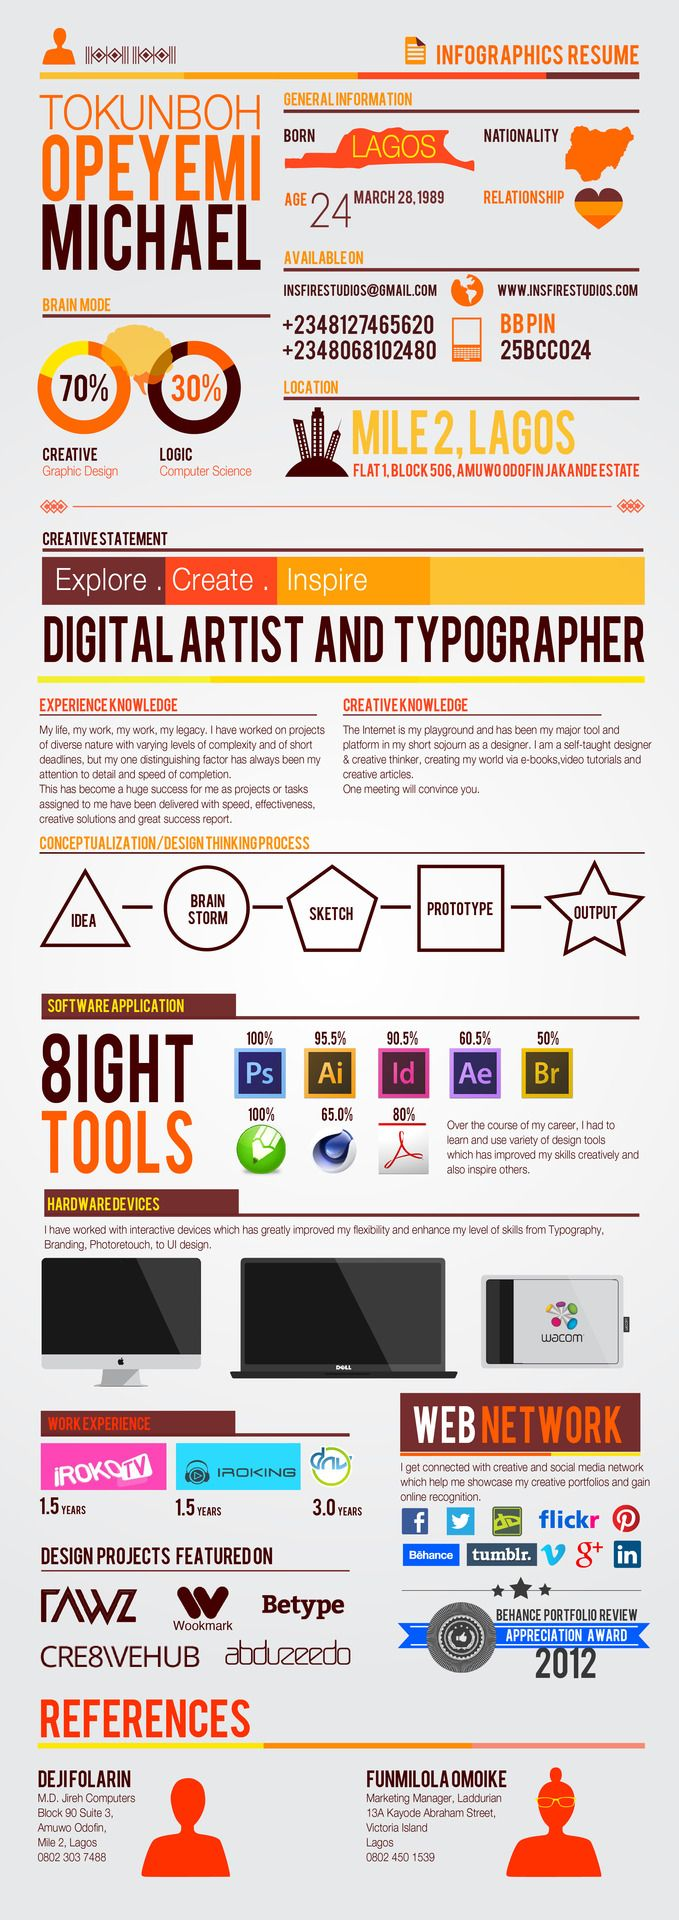 Opposenewapstandardsus  Unusual  Ideas About Infographic Resume On Pinterest  My Portfolio  With Heavenly  Ideas About Infographic Resume On Pinterest  My Portfolio Resume And Resume Design With Delectable Hadoop Resume Also Company Resume In Addition Infographic Resumes And Linked In Resume Builder As Well As Resume Builder Google Additionally Music Teacher Resume From Pinterestcom With Opposenewapstandardsus  Heavenly  Ideas About Infographic Resume On Pinterest  My Portfolio  With Delectable  Ideas About Infographic Resume On Pinterest  My Portfolio Resume And Resume Design And Unusual Hadoop Resume Also Company Resume In Addition Infographic Resumes From Pinterestcom